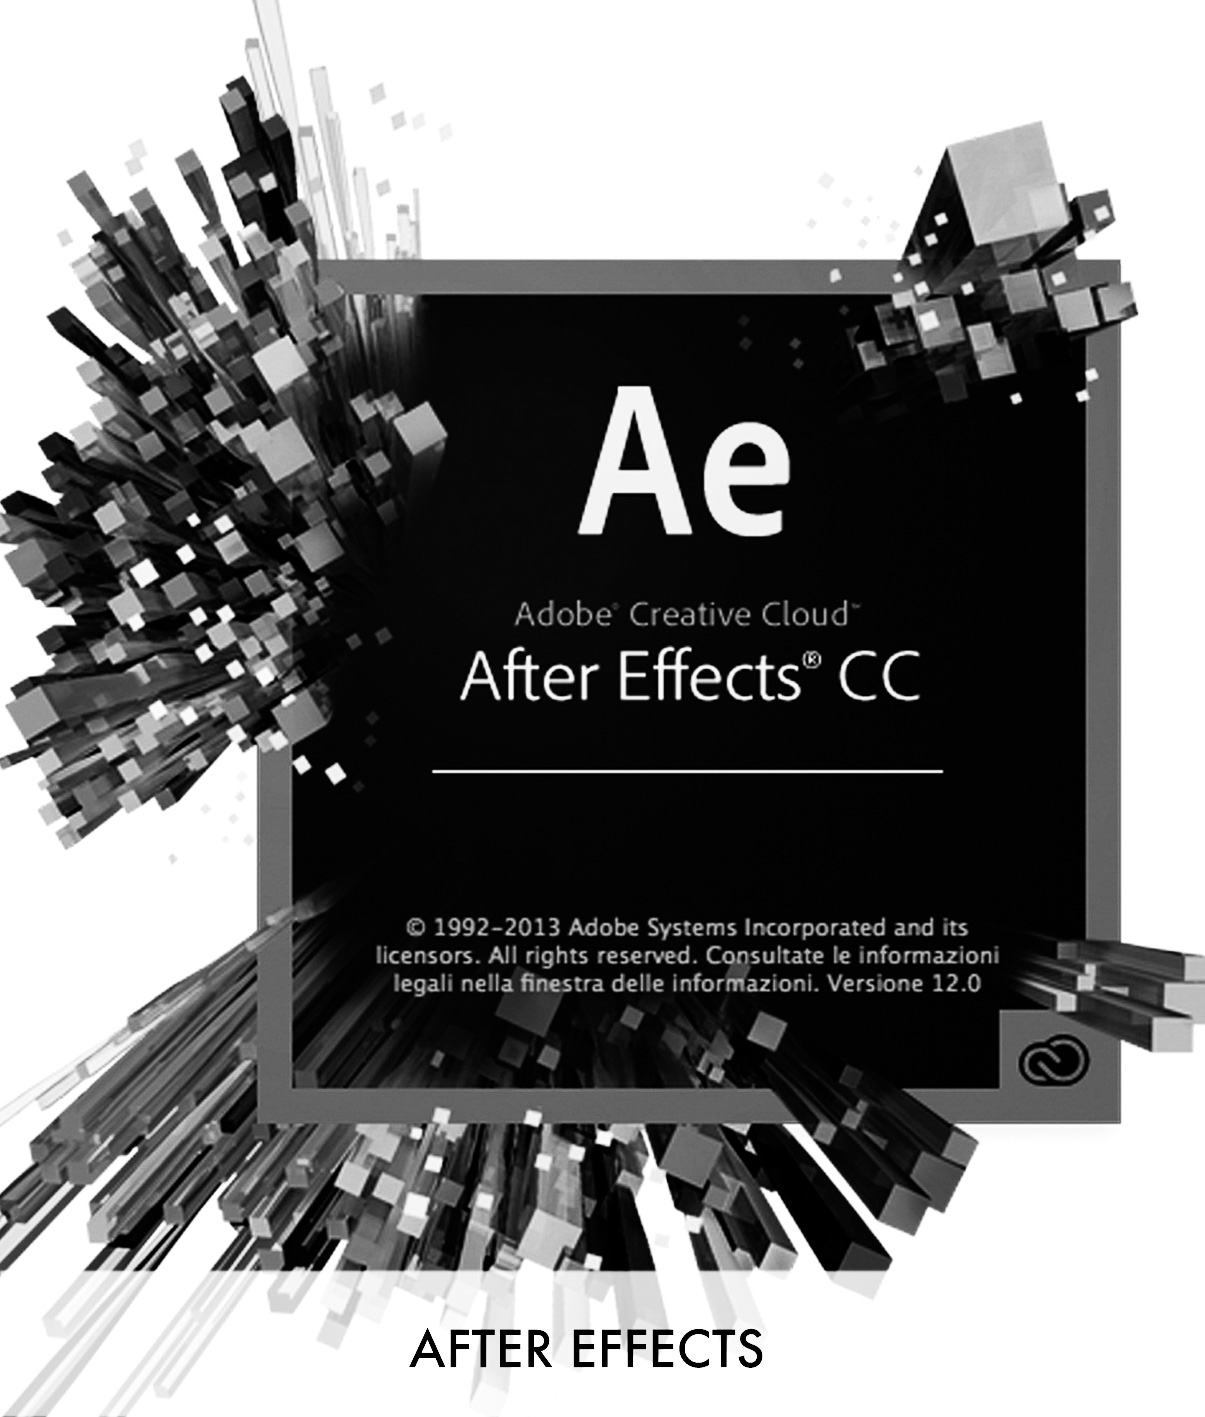 after_effects.jpg